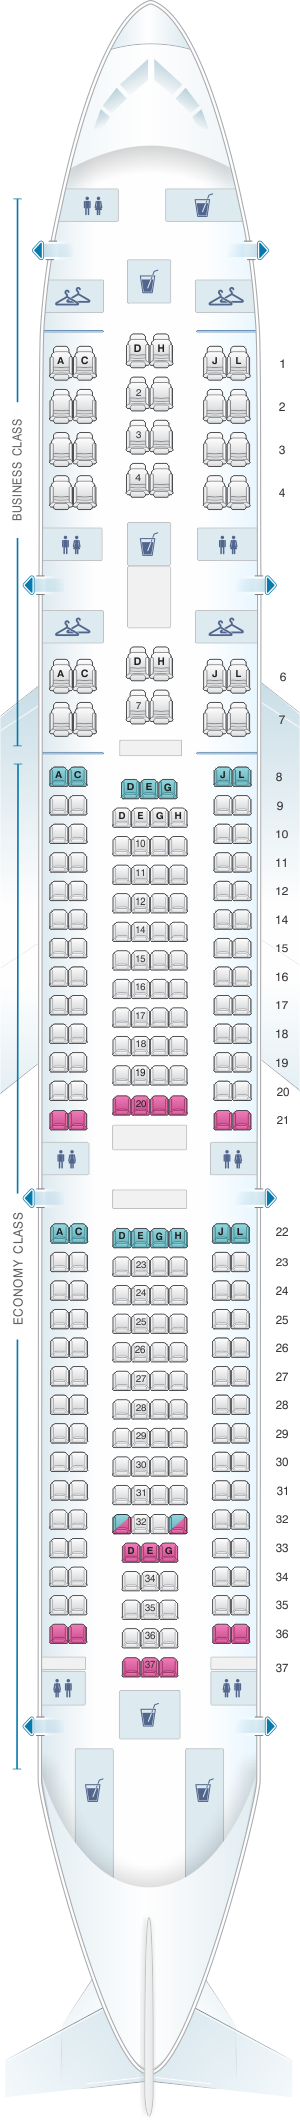 Seat map for Iberia Airbus A340 300